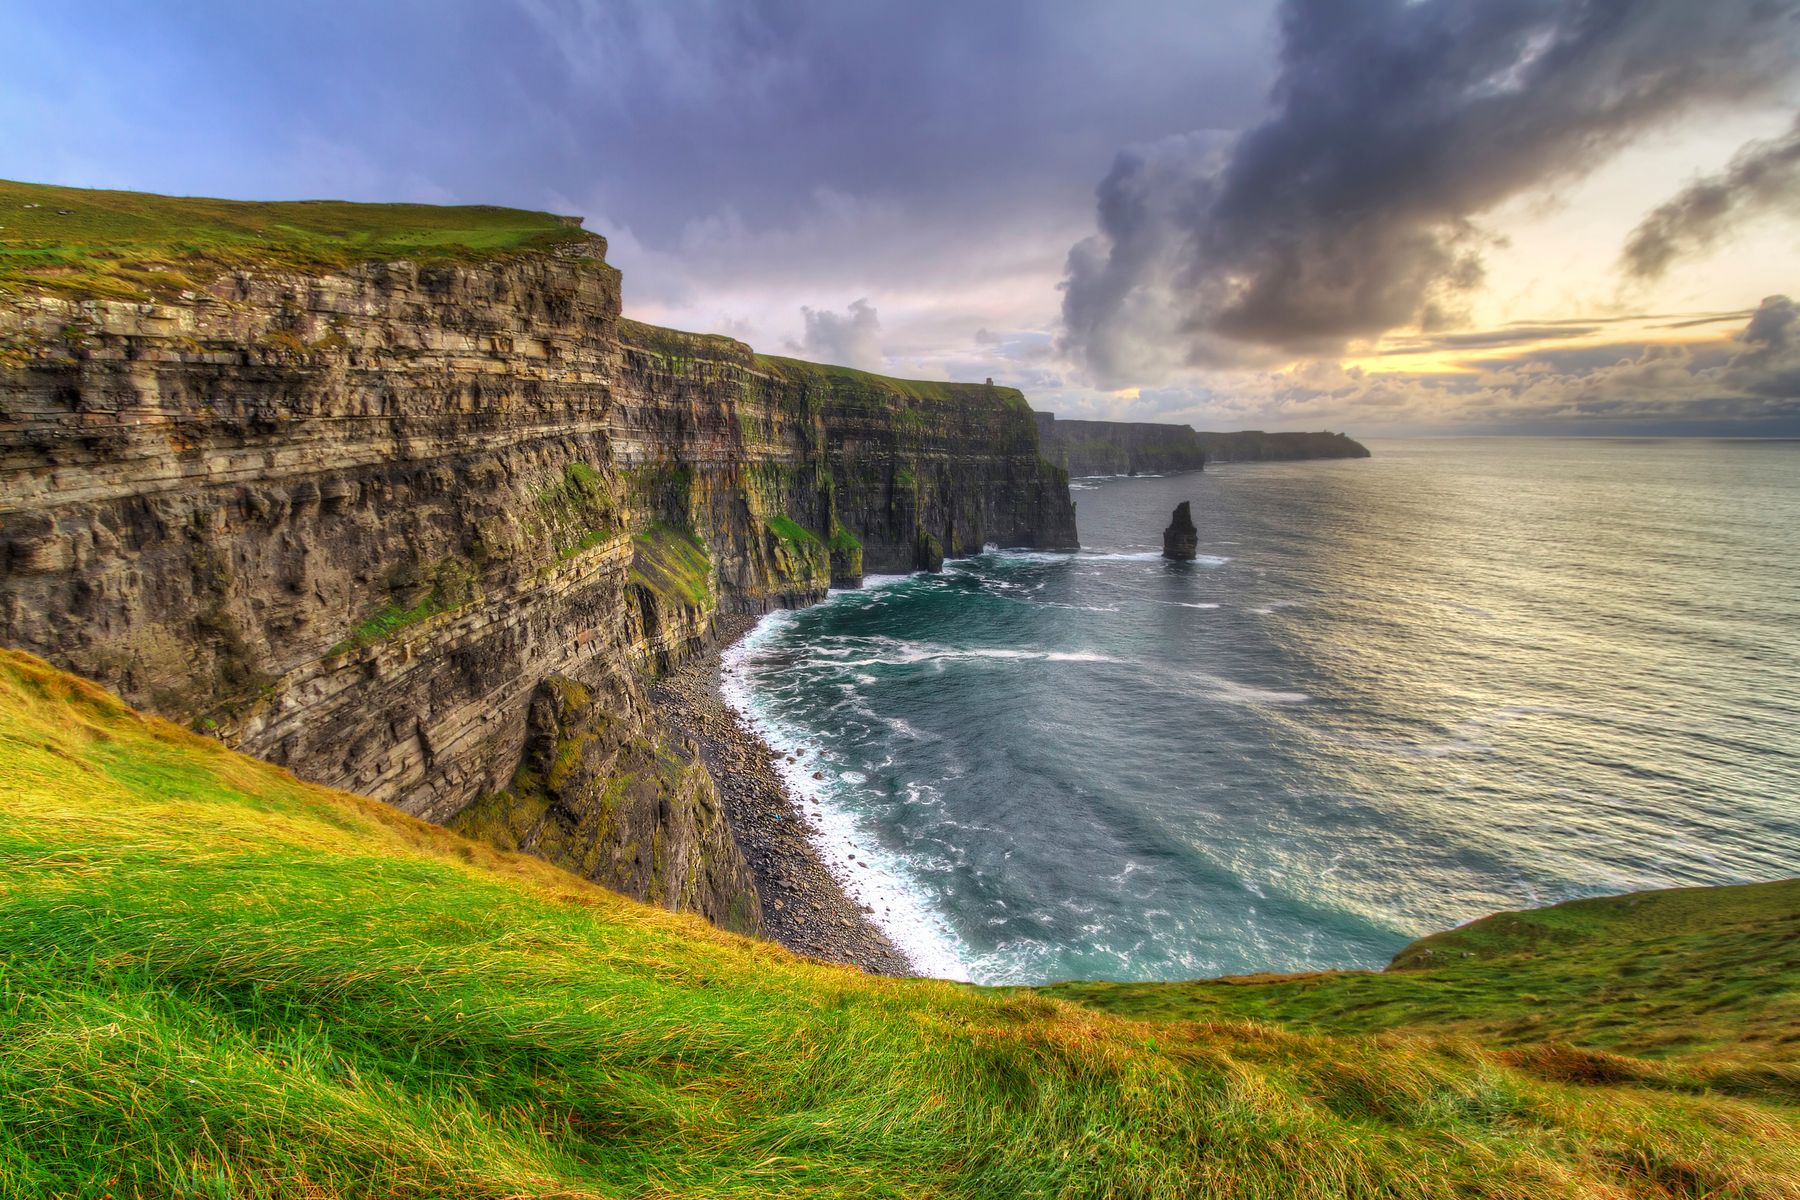 Cliffs of Moher in Ireland, one of the best places to travel alone.